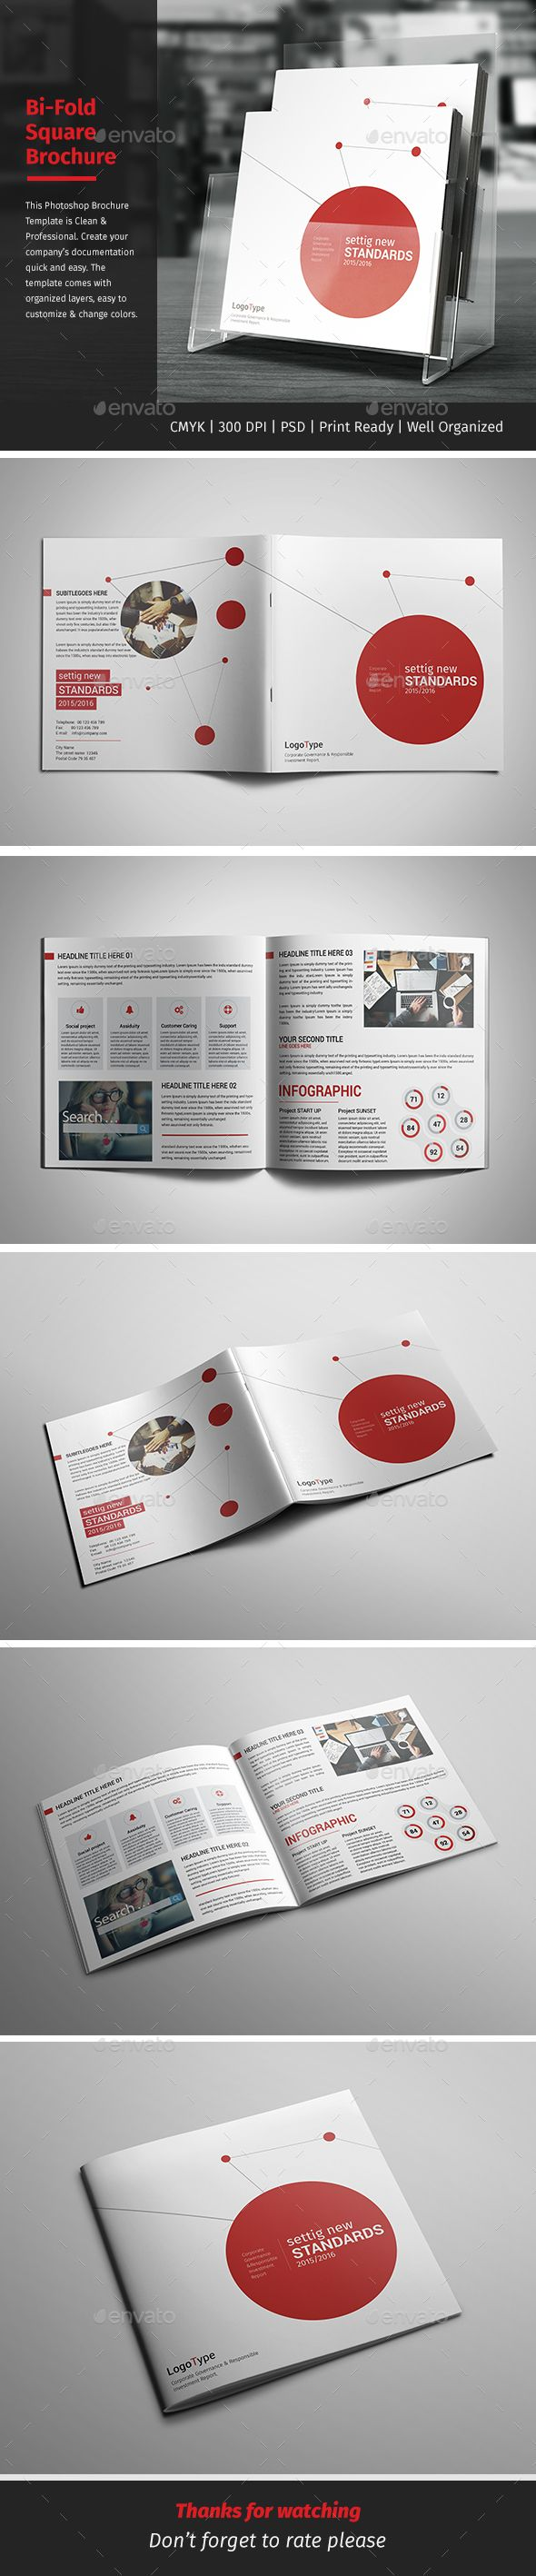 Corporate Bi-fold Square Brochure 04